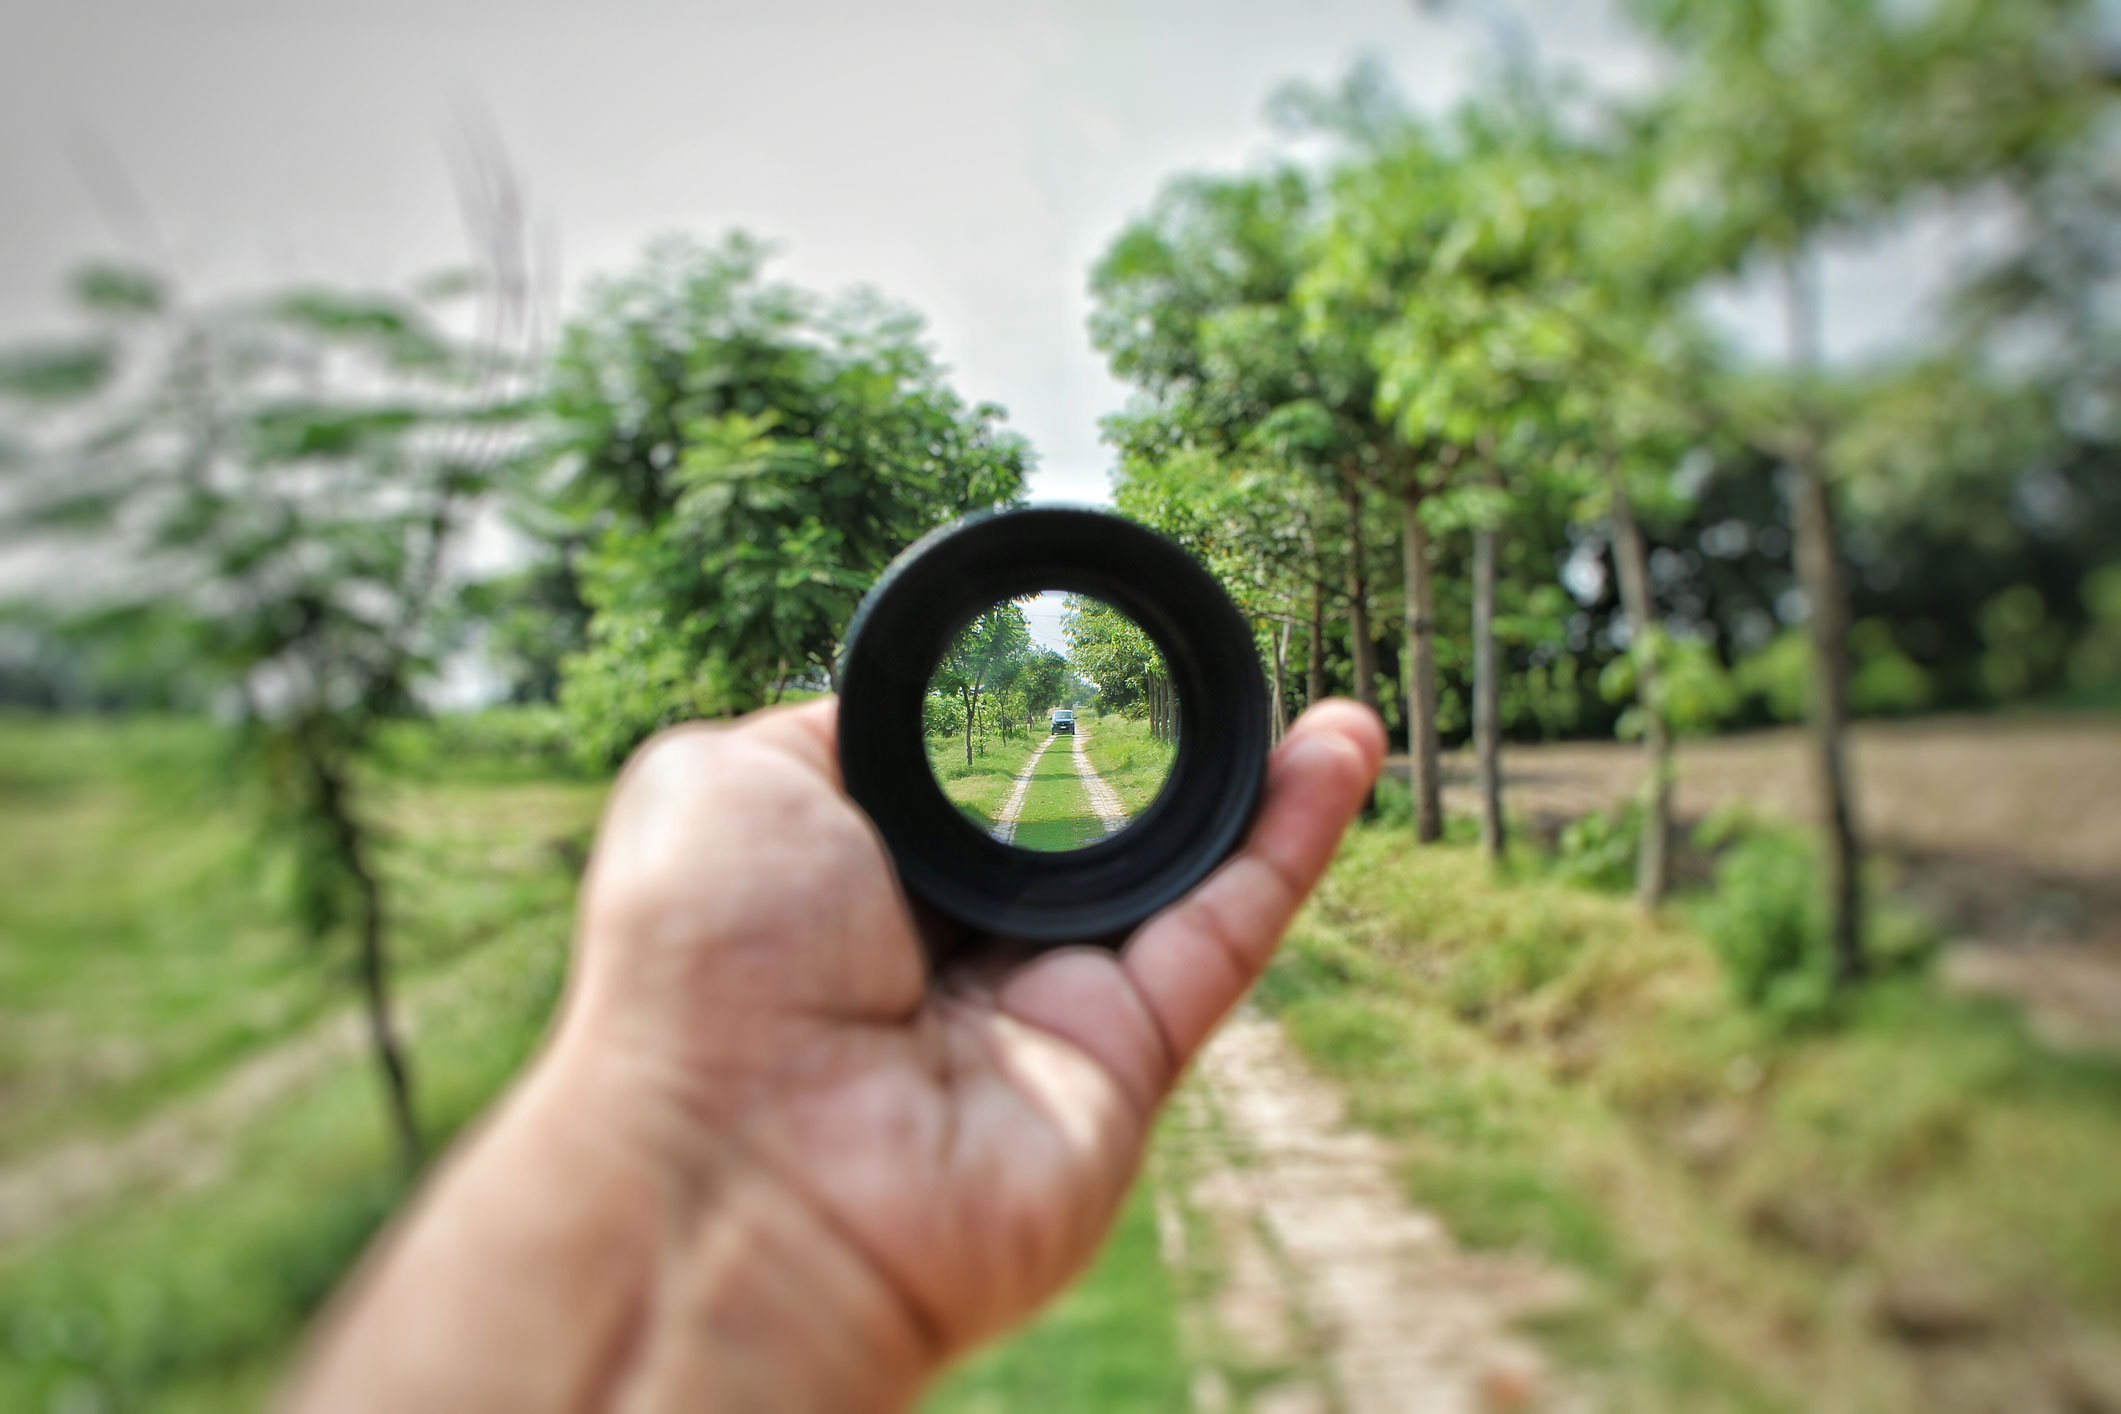 lense vision on outdoor path